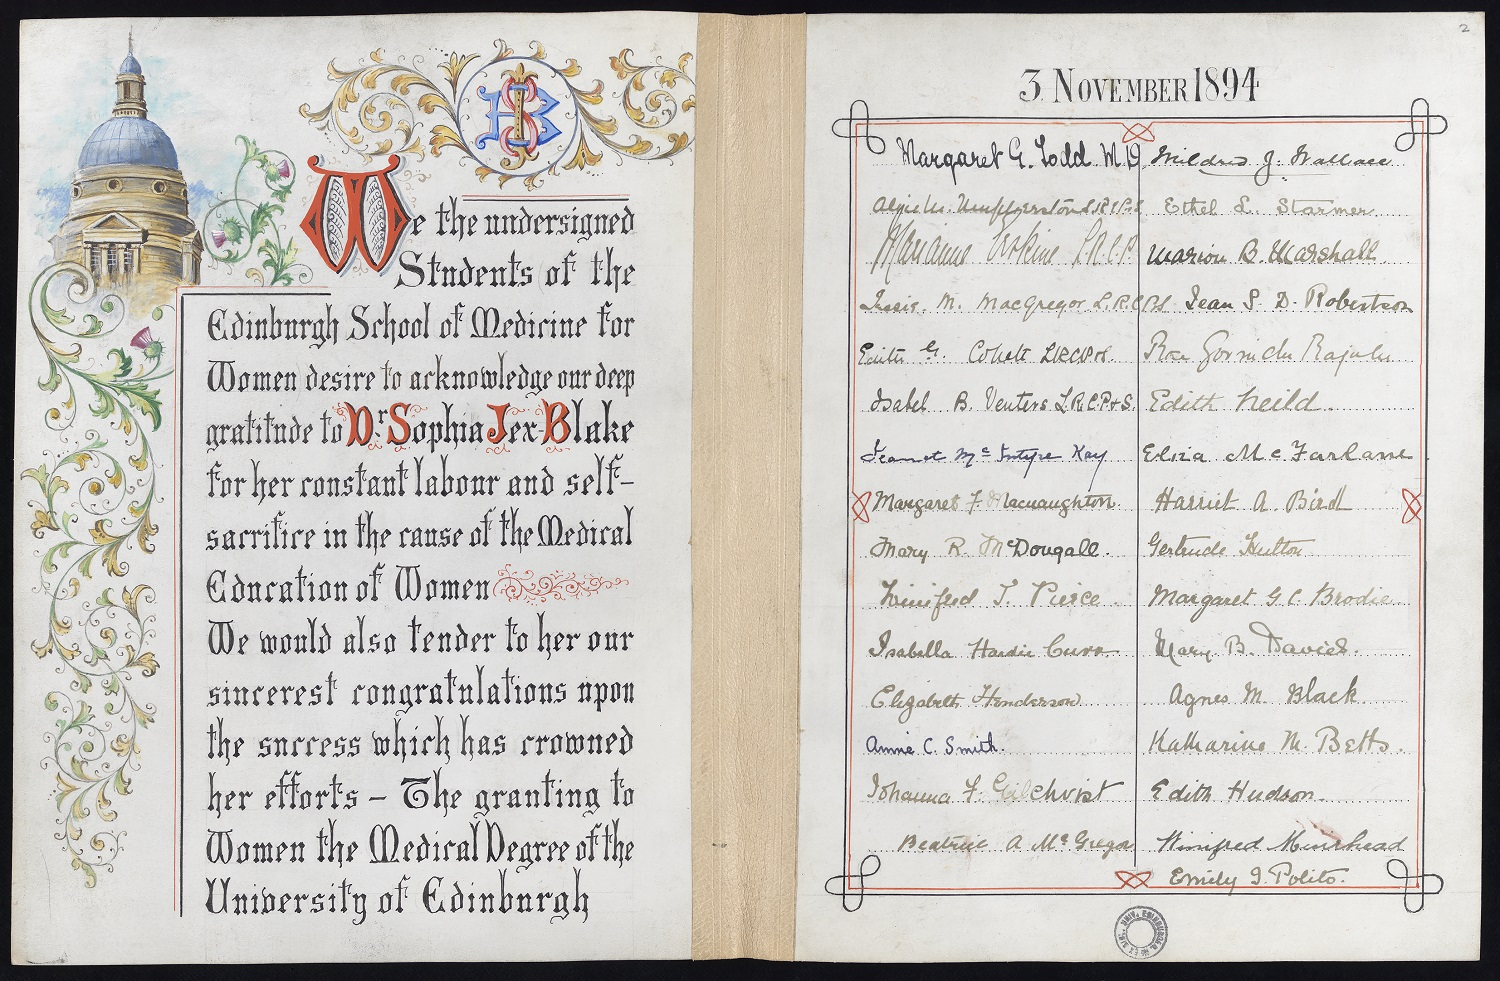 The Princess Royal honours the Edinburgh Seven, whose campaigning led to the passing of the UK Medical Act 1876